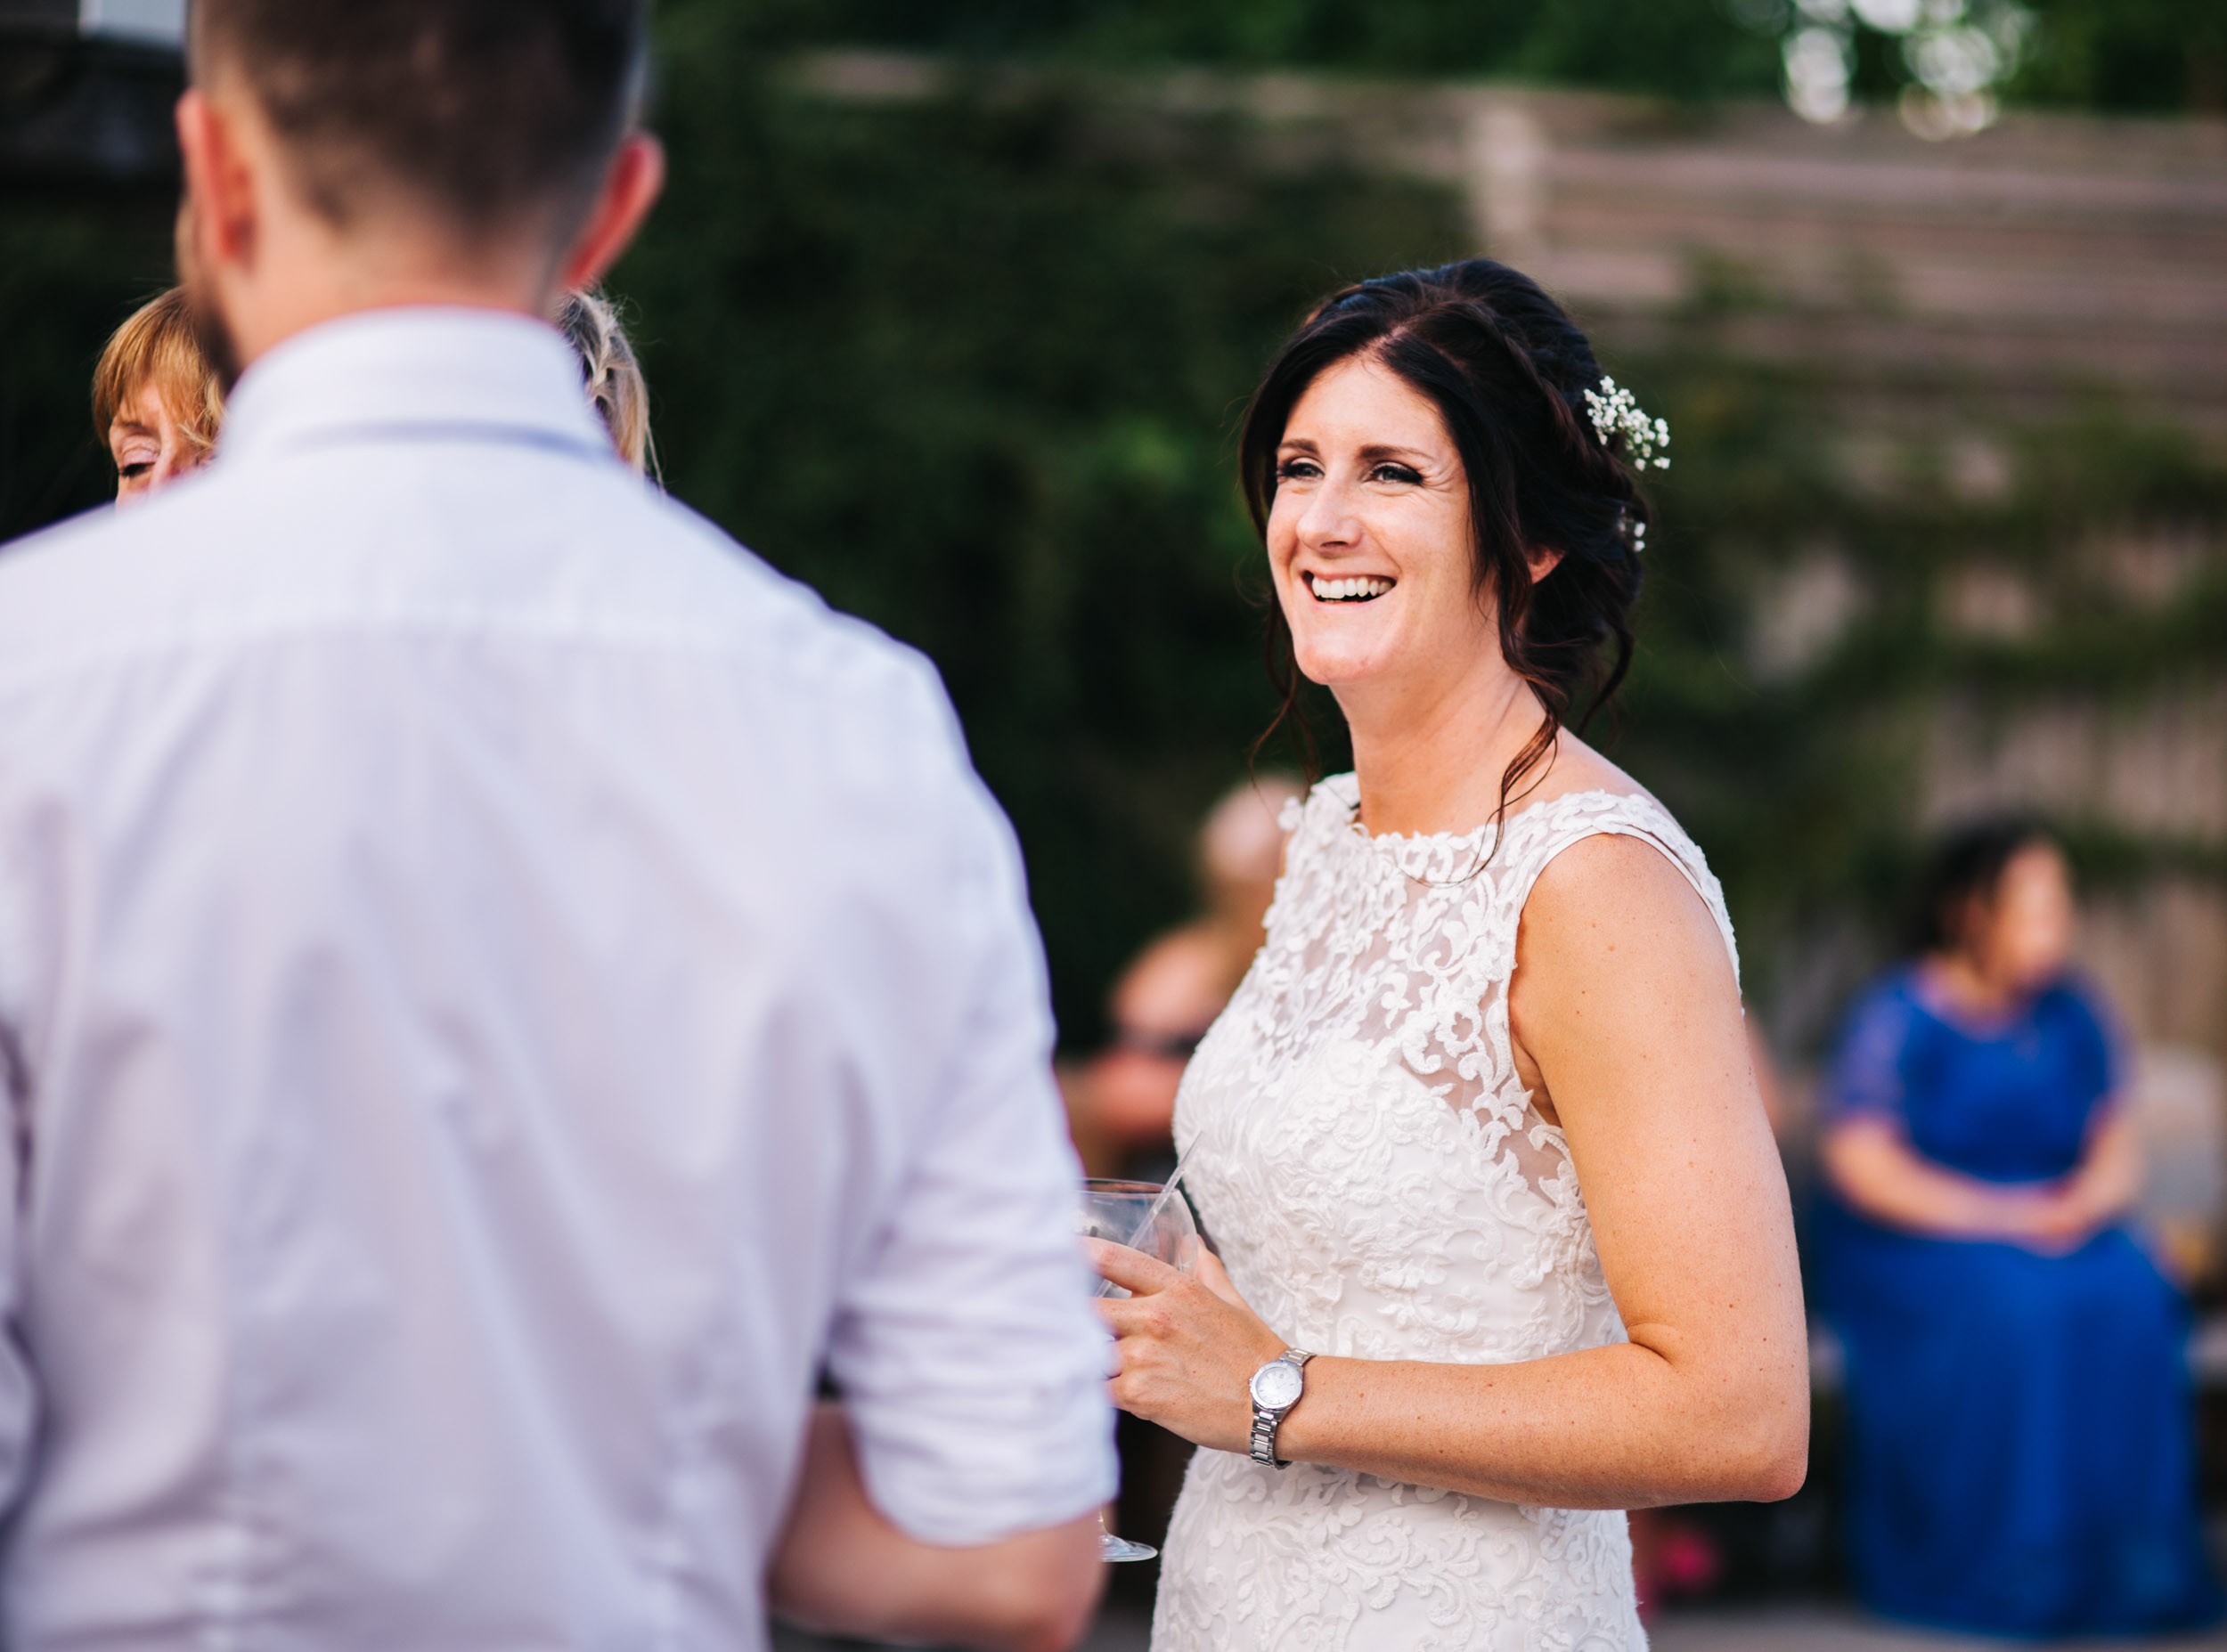 documentary wedding photography Cheshire - guests having fun